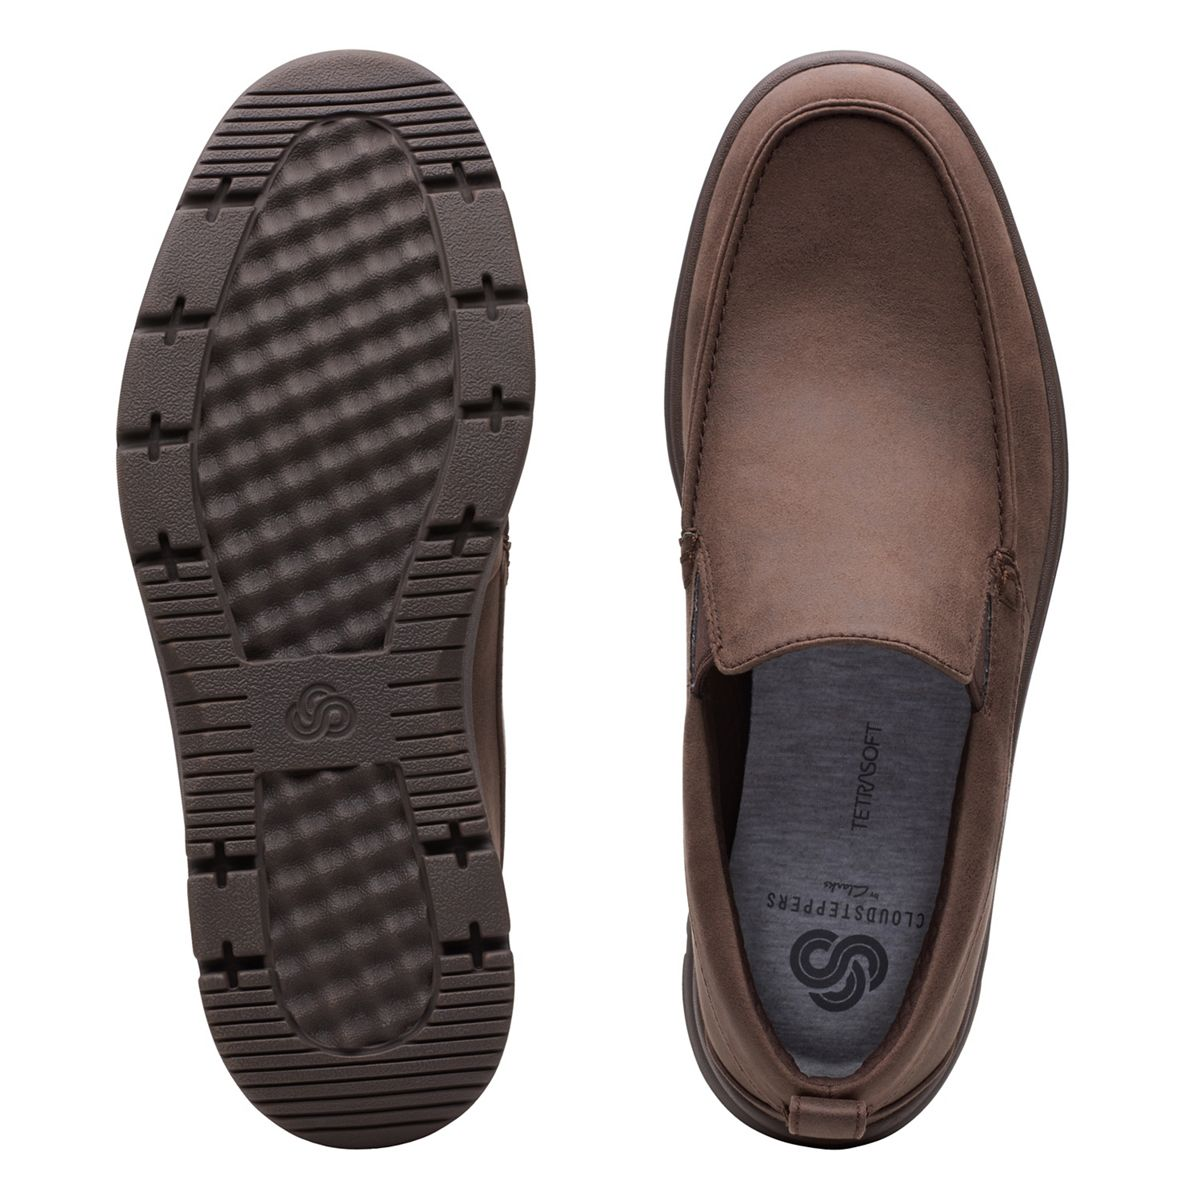 Clarks Herren Tunsil Way Slipper: : Schuhe